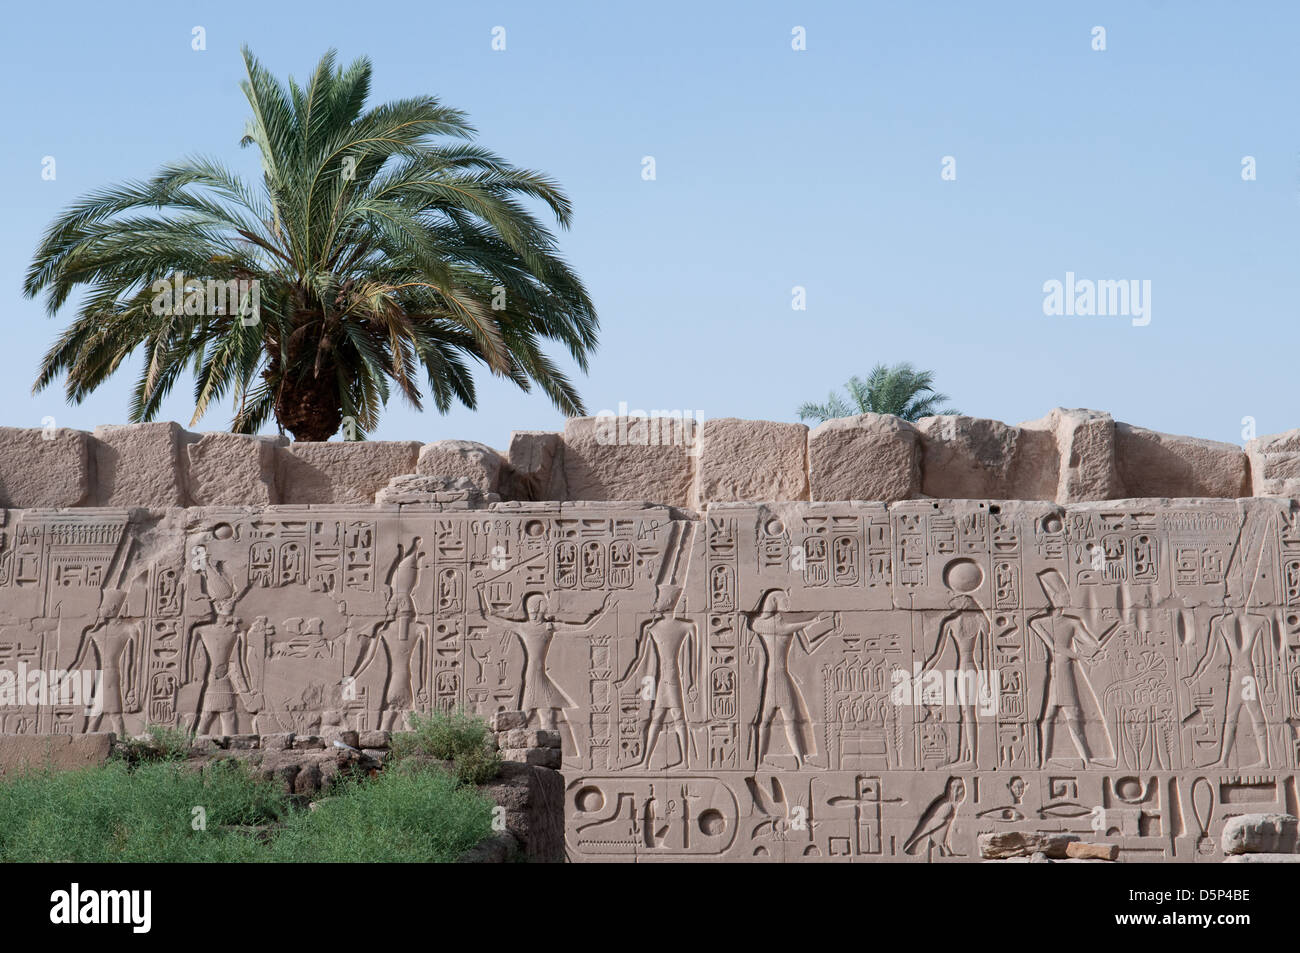 A frieze in the precinct of Amun Re Temple at the Karnak temple complex Luxor Egypt - Stock Image